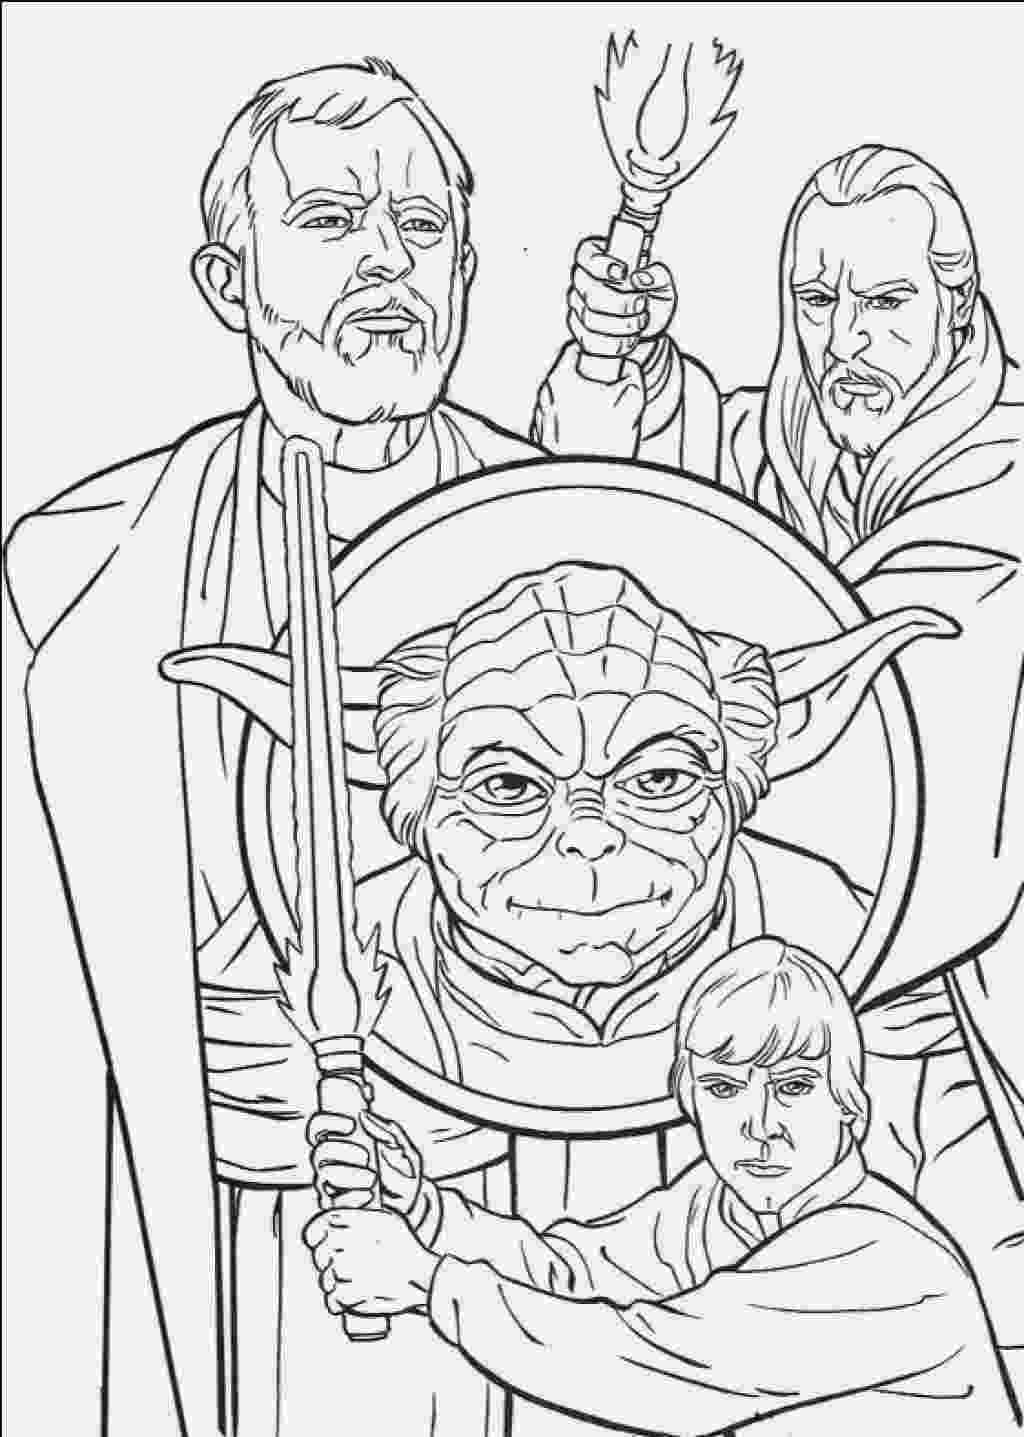 star wars the clone wars coloring pages to print star wars clone wars coloring pages getcoloringpagescom coloring clone wars star the print to pages wars